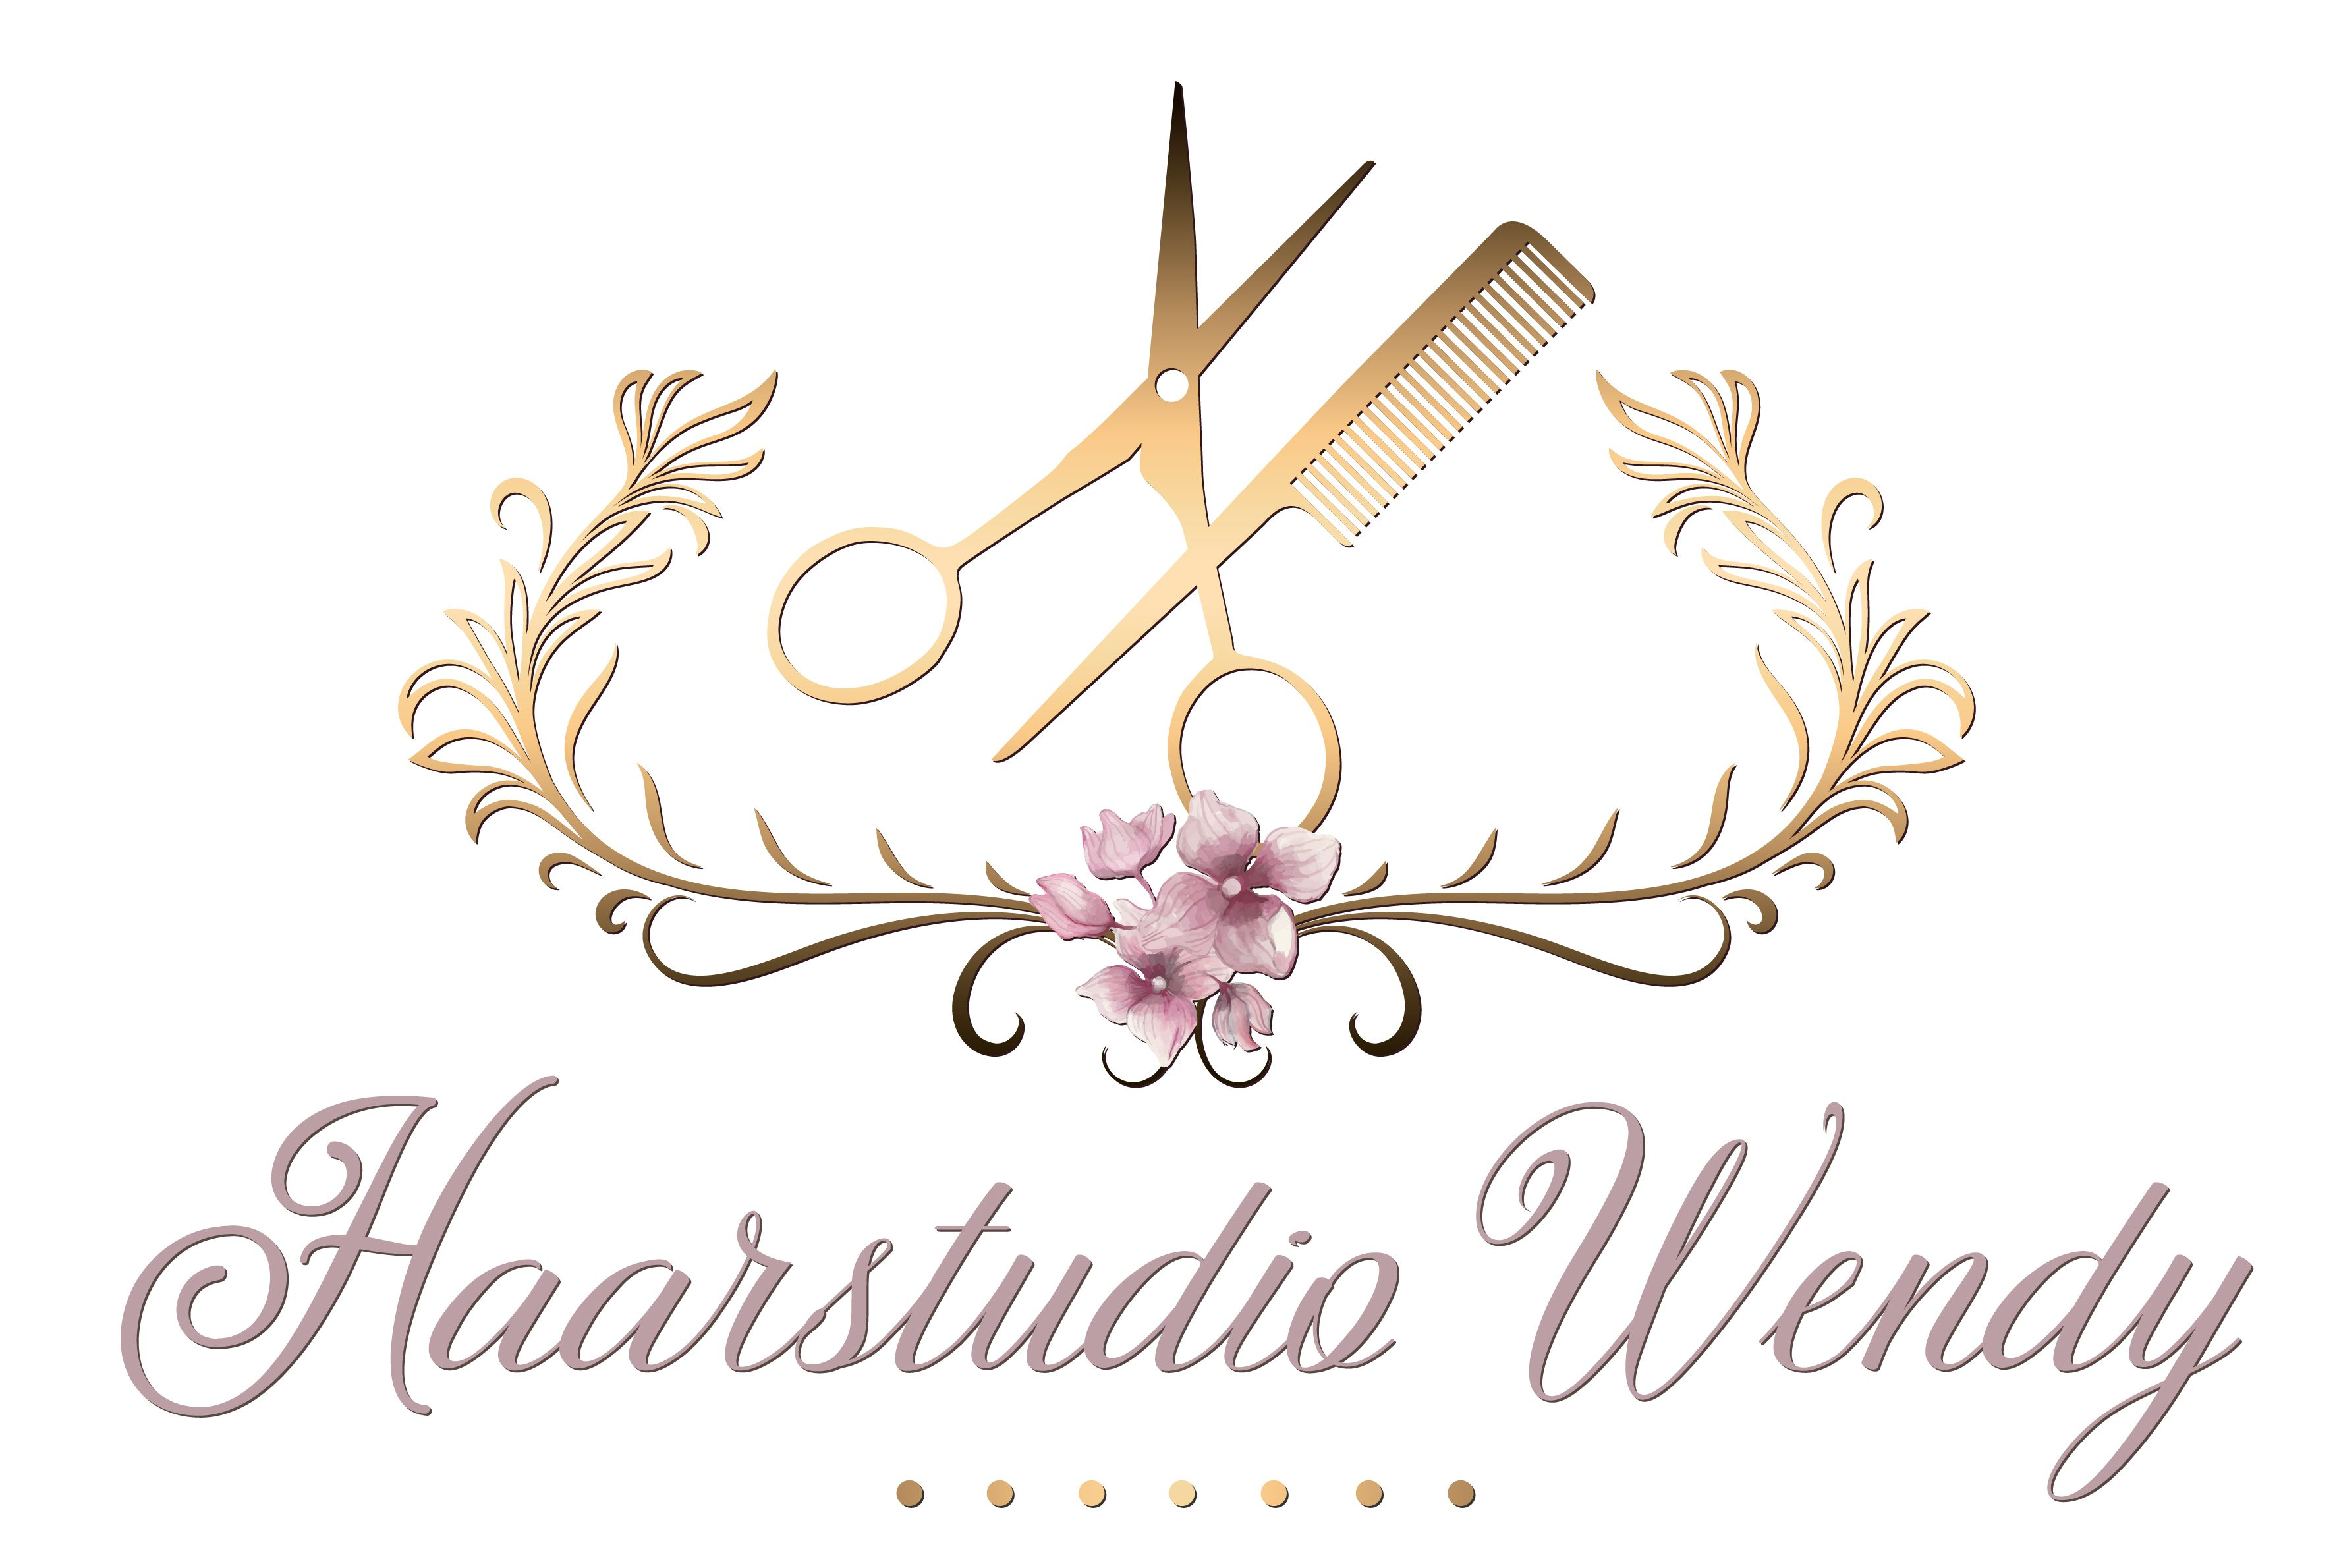 Haarstudio Wendy